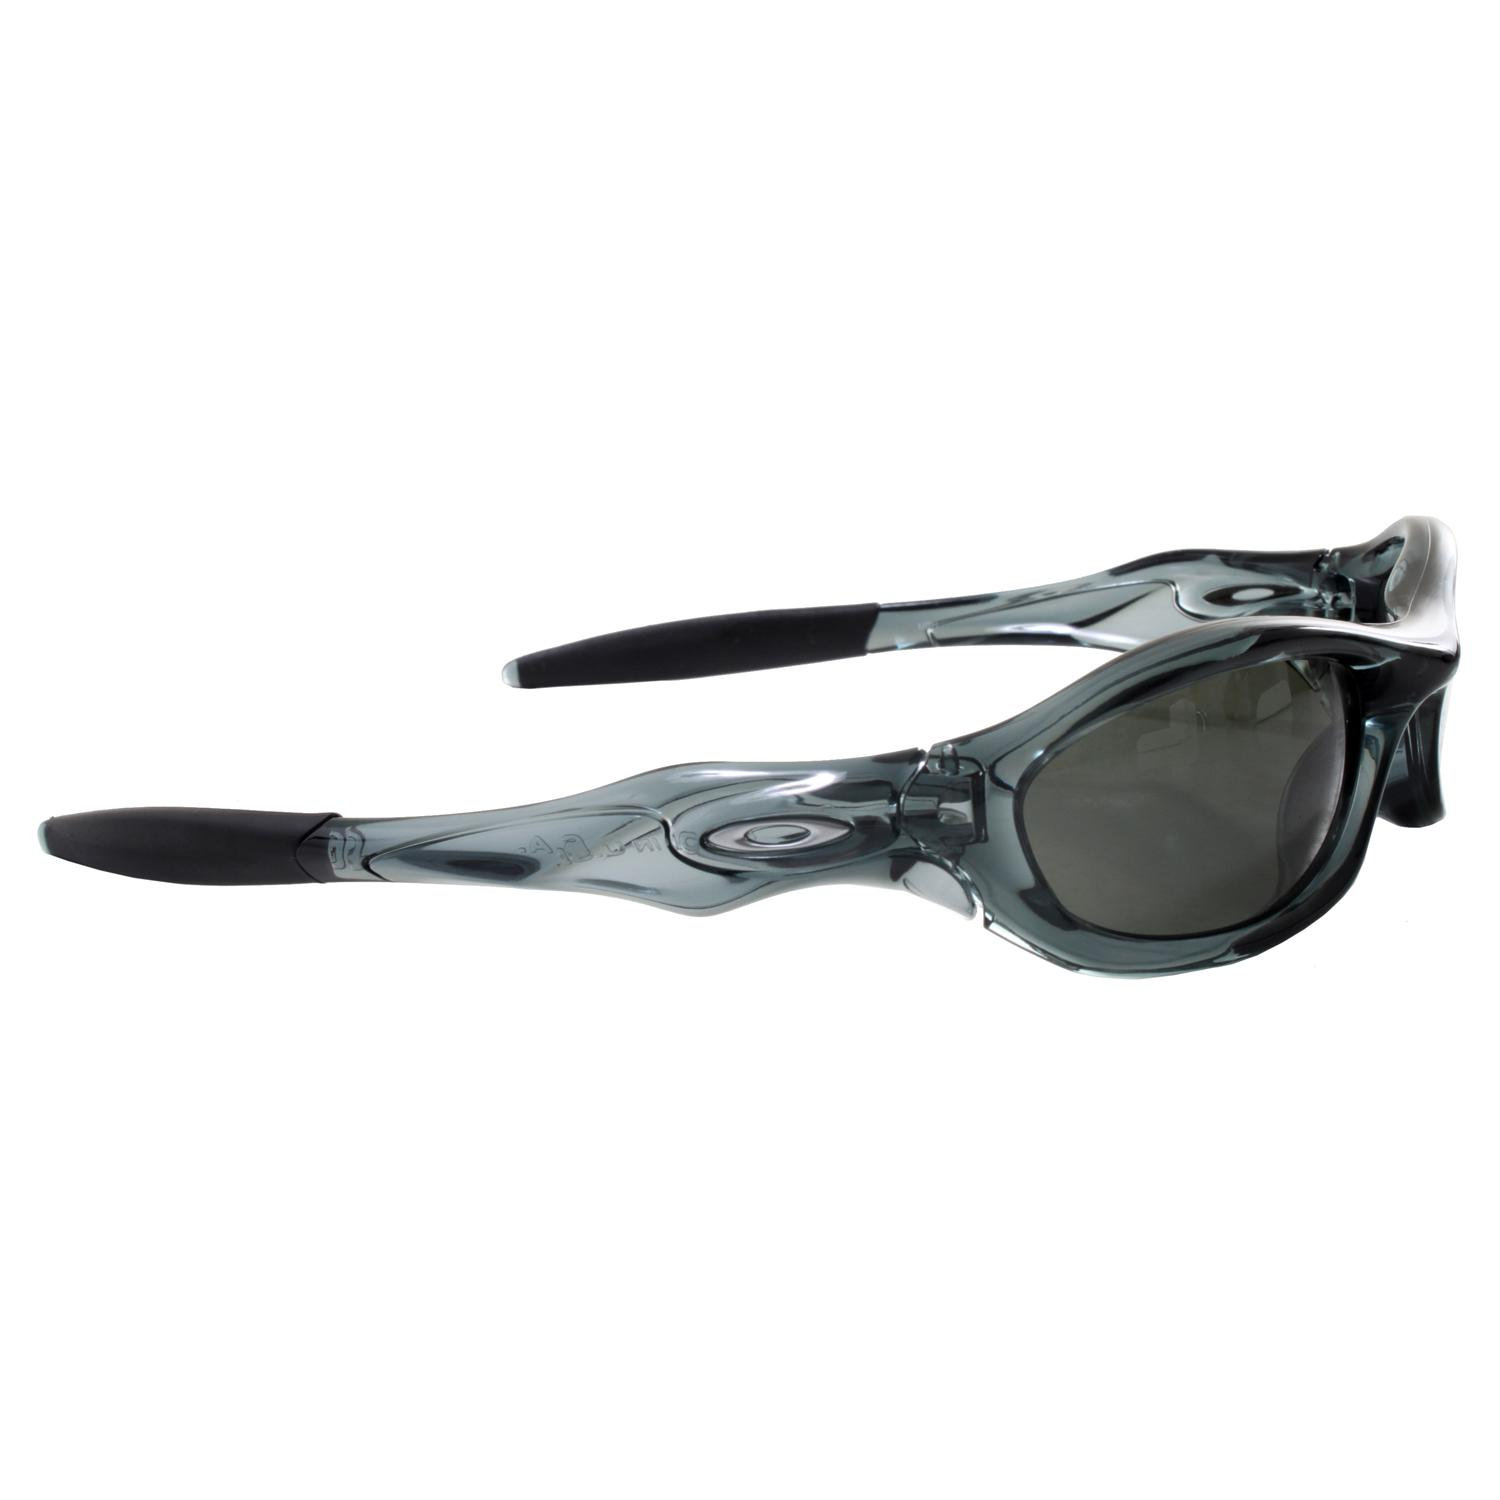 7ozmv6s19mtaj5r Oakley Sunglasses Outlet